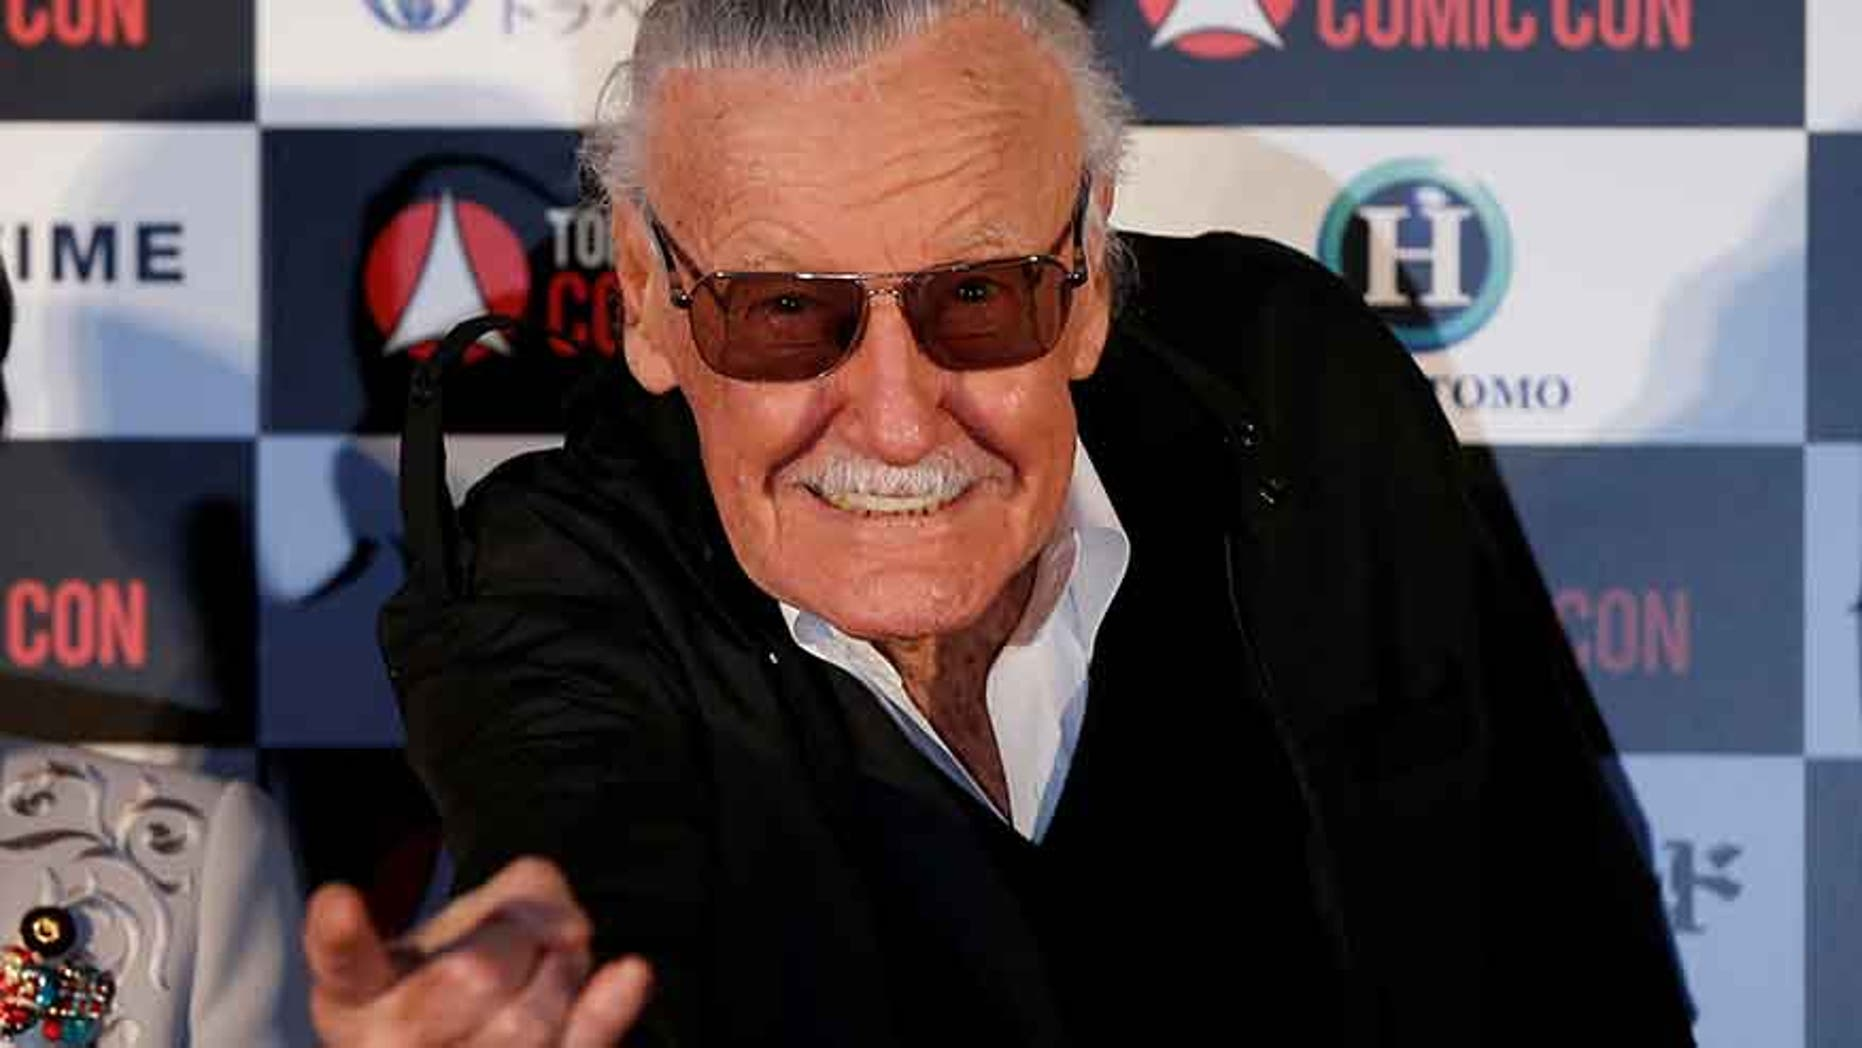 Stan Lee, comic book legend, attends an opening ceremony of Tokyo Comic Con  at